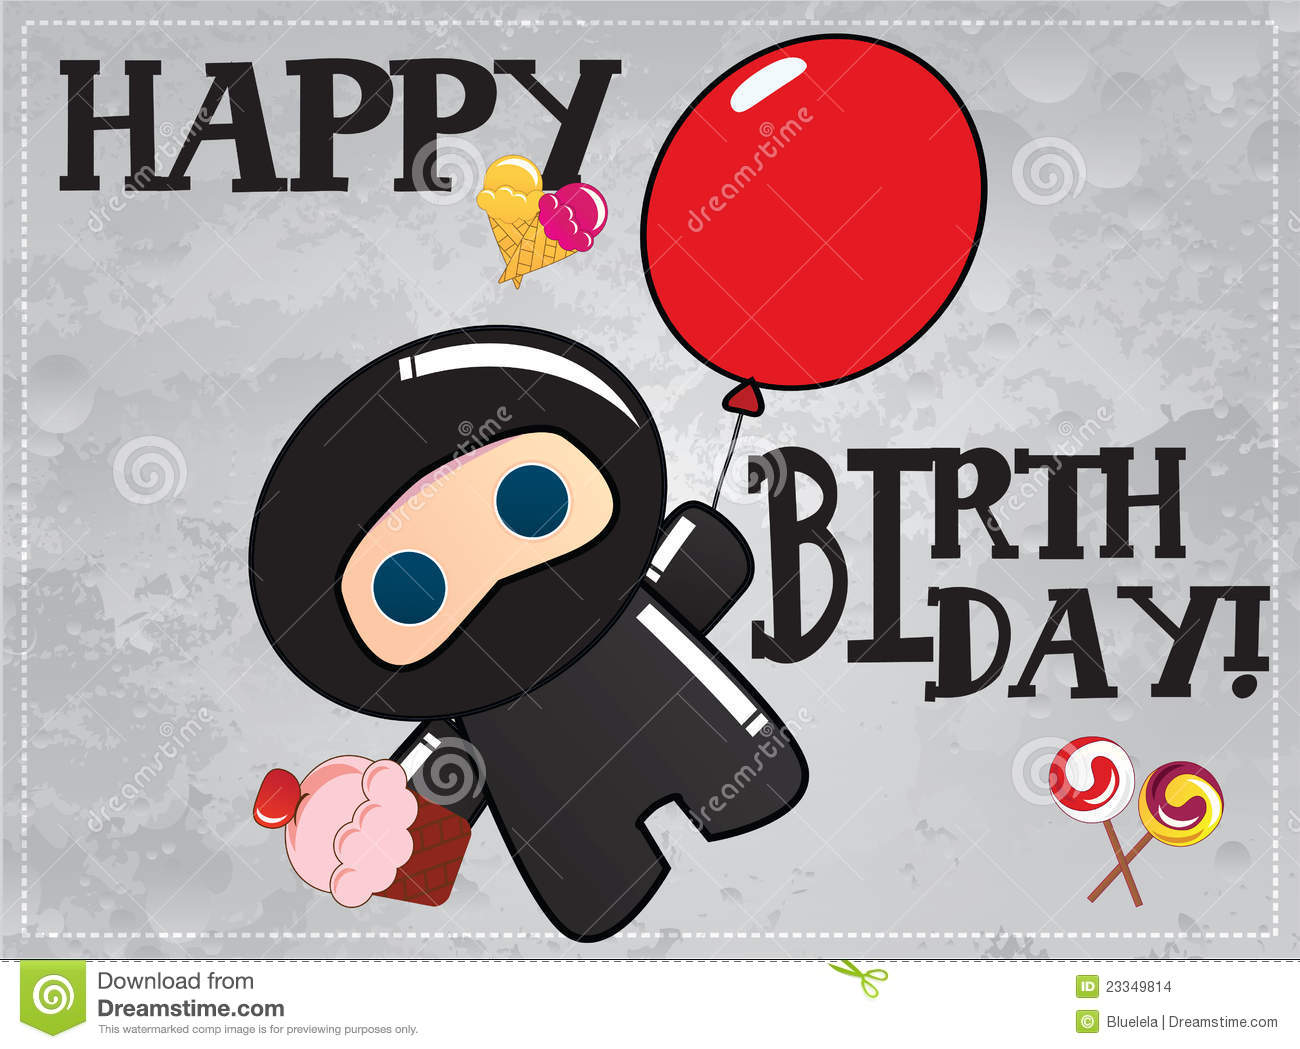 Happy Birthday Card With Cute Cartoon Ninja Character Holding A Balloon In One Hand And Cup Cake Another